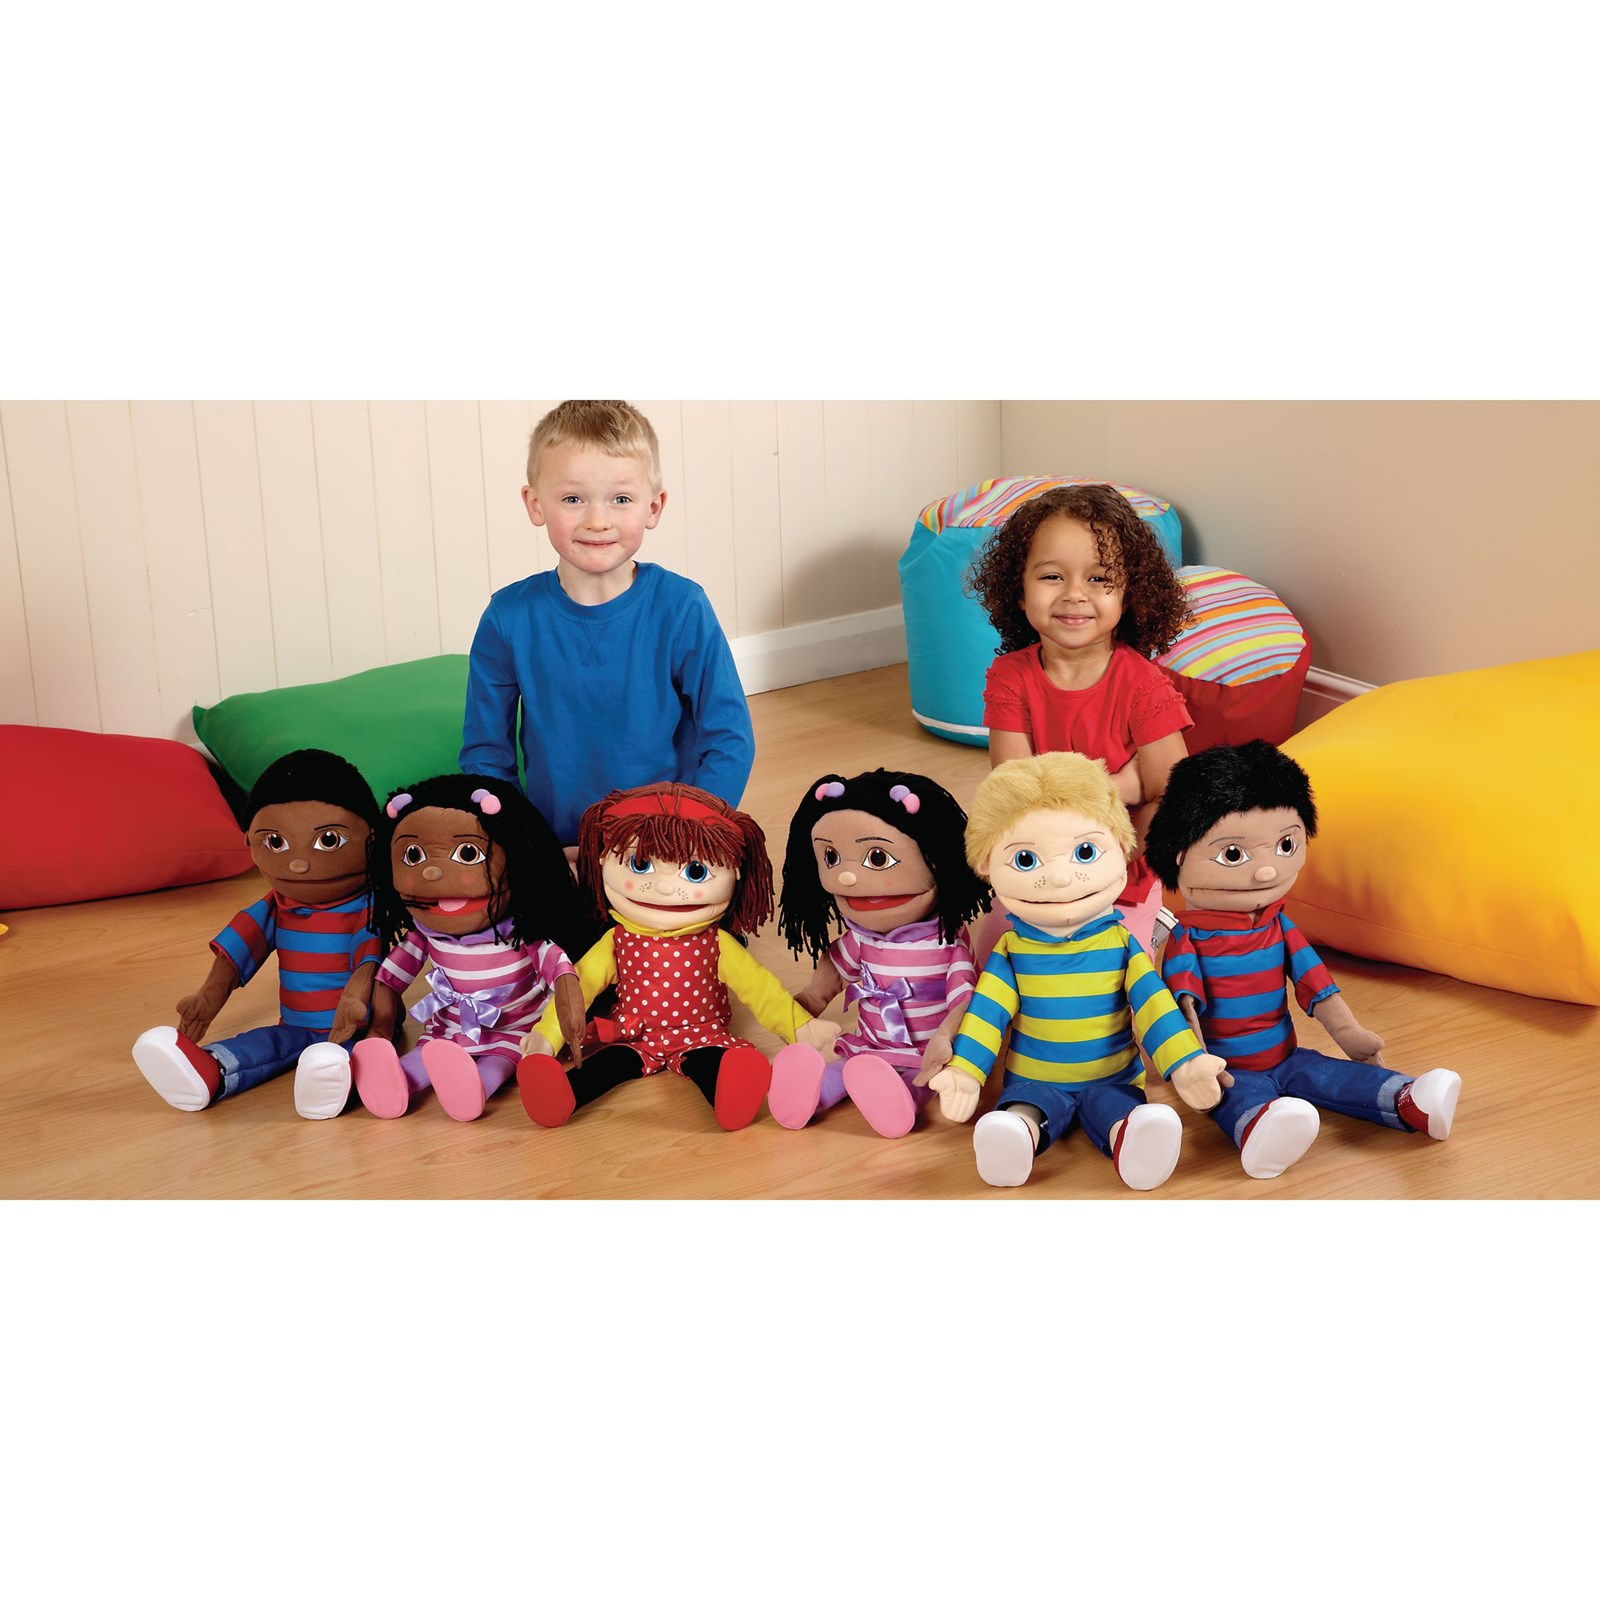 Giant Multicultural Hand Puppets - Brown Girl